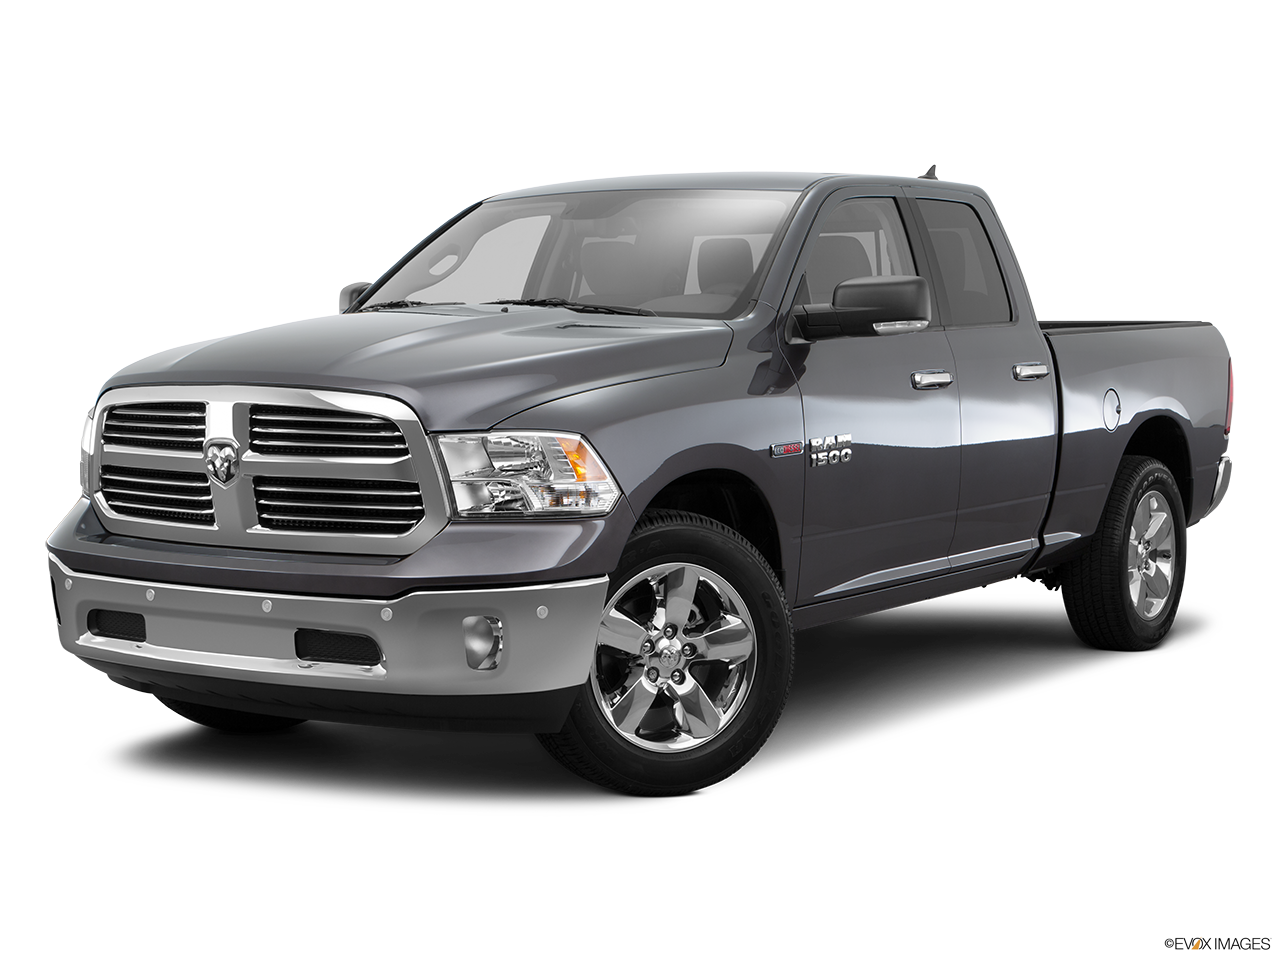 2016 ram 1500 info for nj philadelphia cherry hill dodge chrysler jeep ram. Black Bedroom Furniture Sets. Home Design Ideas